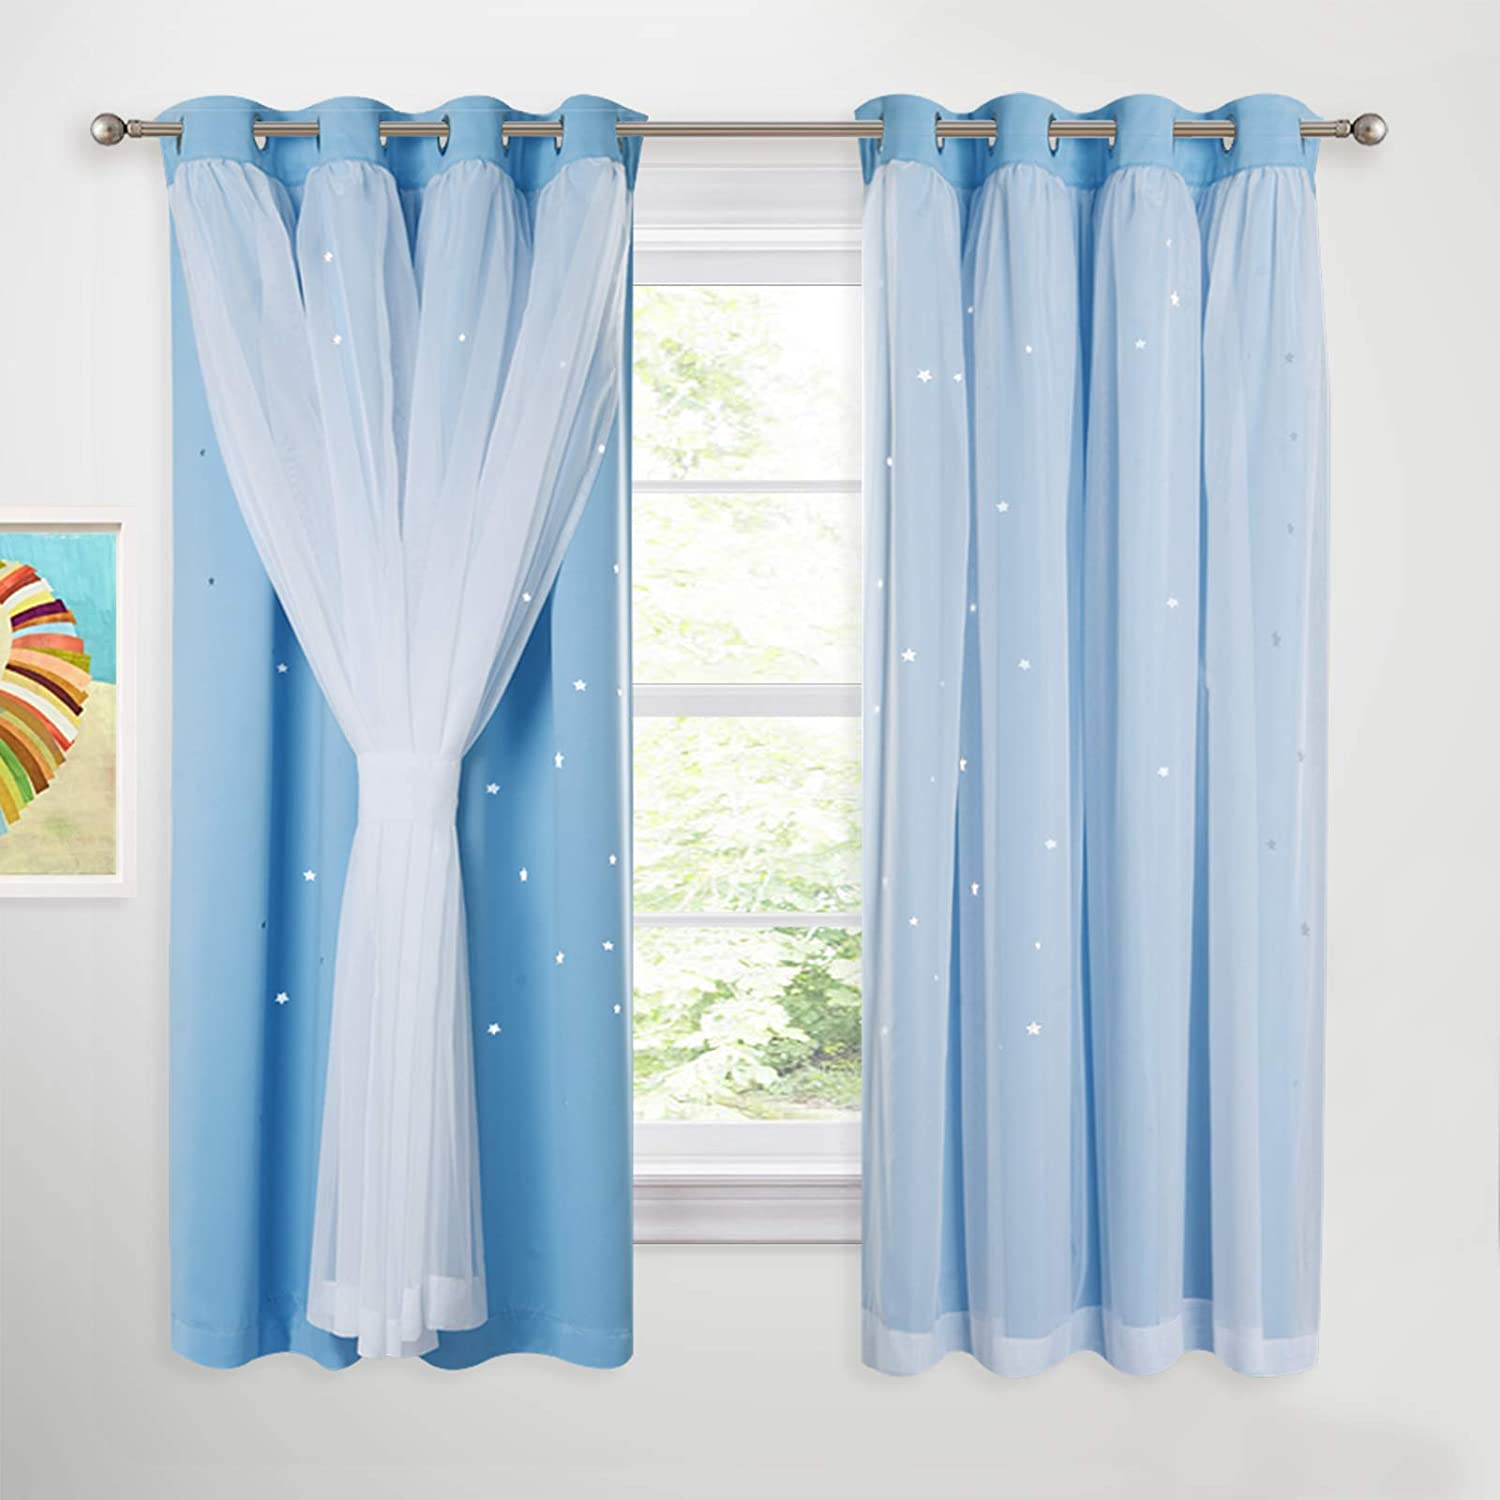 Nicetown Kids Thermal Curtains Voile Decorative Star Drapes With Eyelets For Privacy Protected Room Darken Nursery Window Panels For Kids Room Set Of 2 W 52 In X L